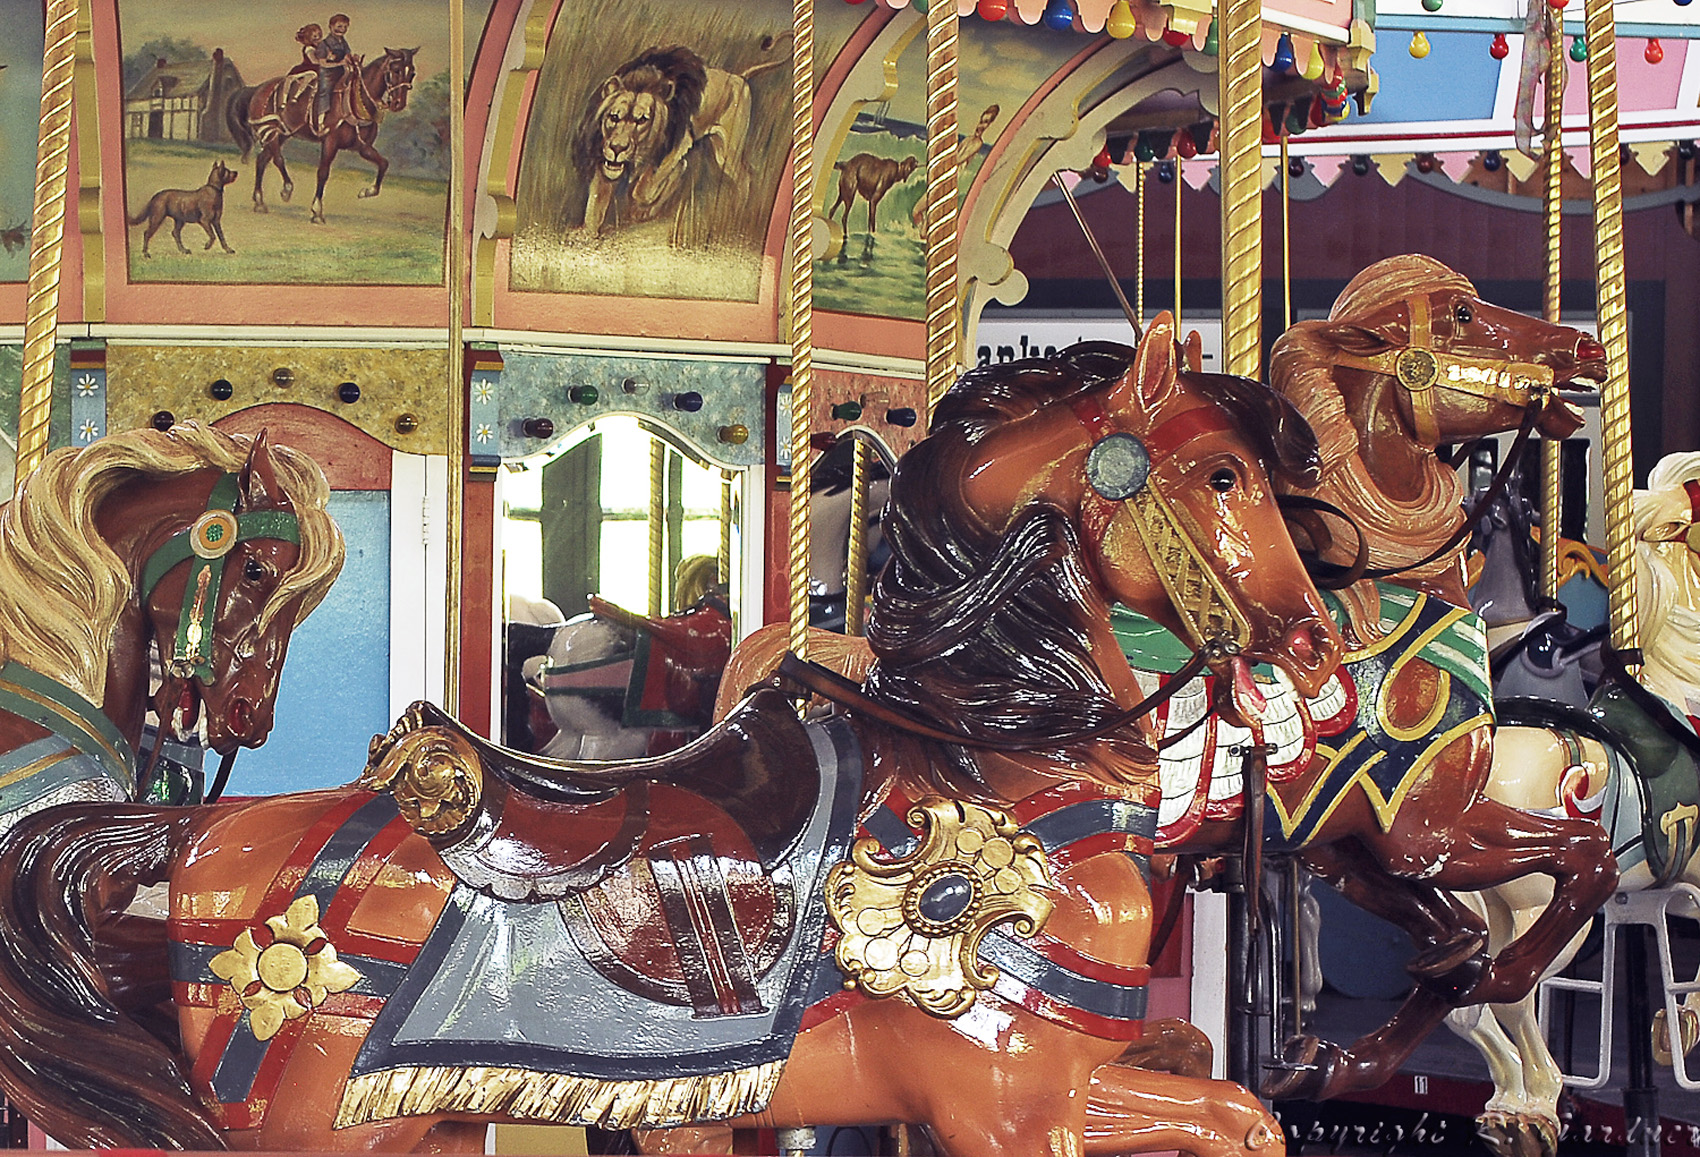 PTC-80-Holyoke-MA-carousel-horse-Richard-Gardner-photo